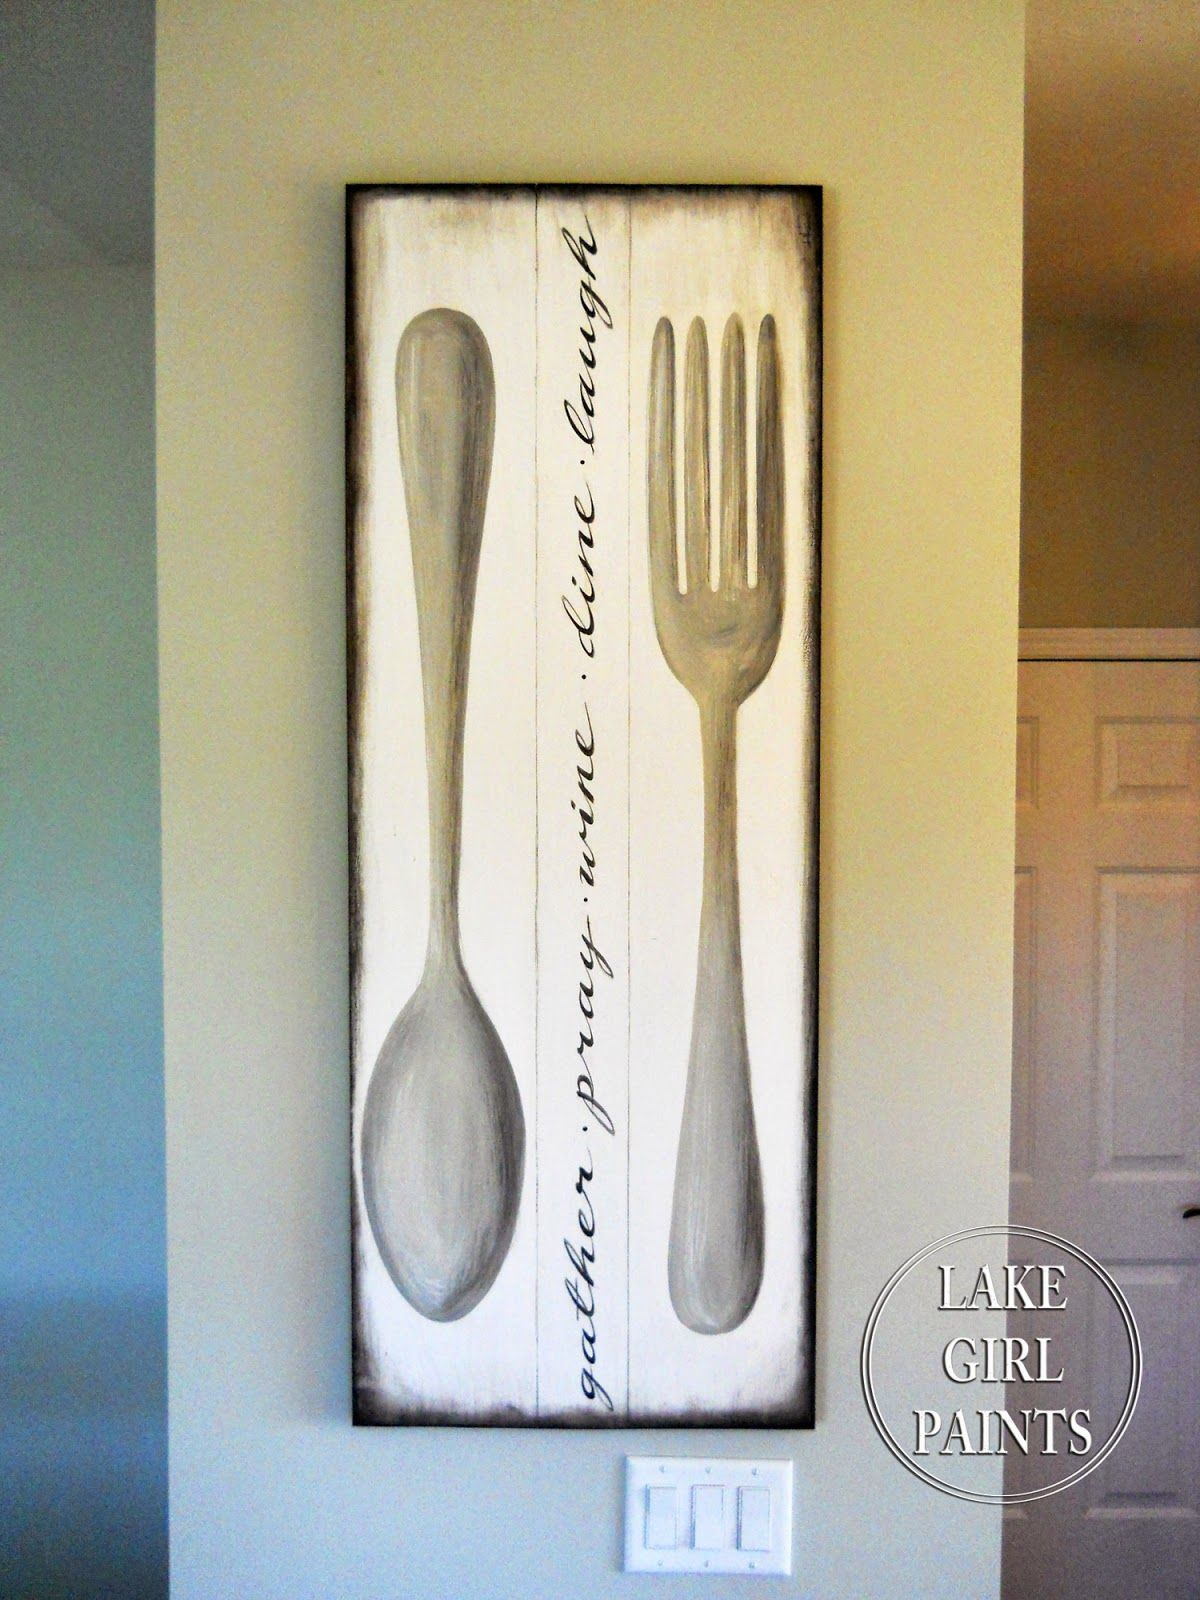 Making A Home With Painted Furniture Happy Art And Handmade Things Dining Room Wall Art Dining Room Decor Diy Dining Room Wall Decor